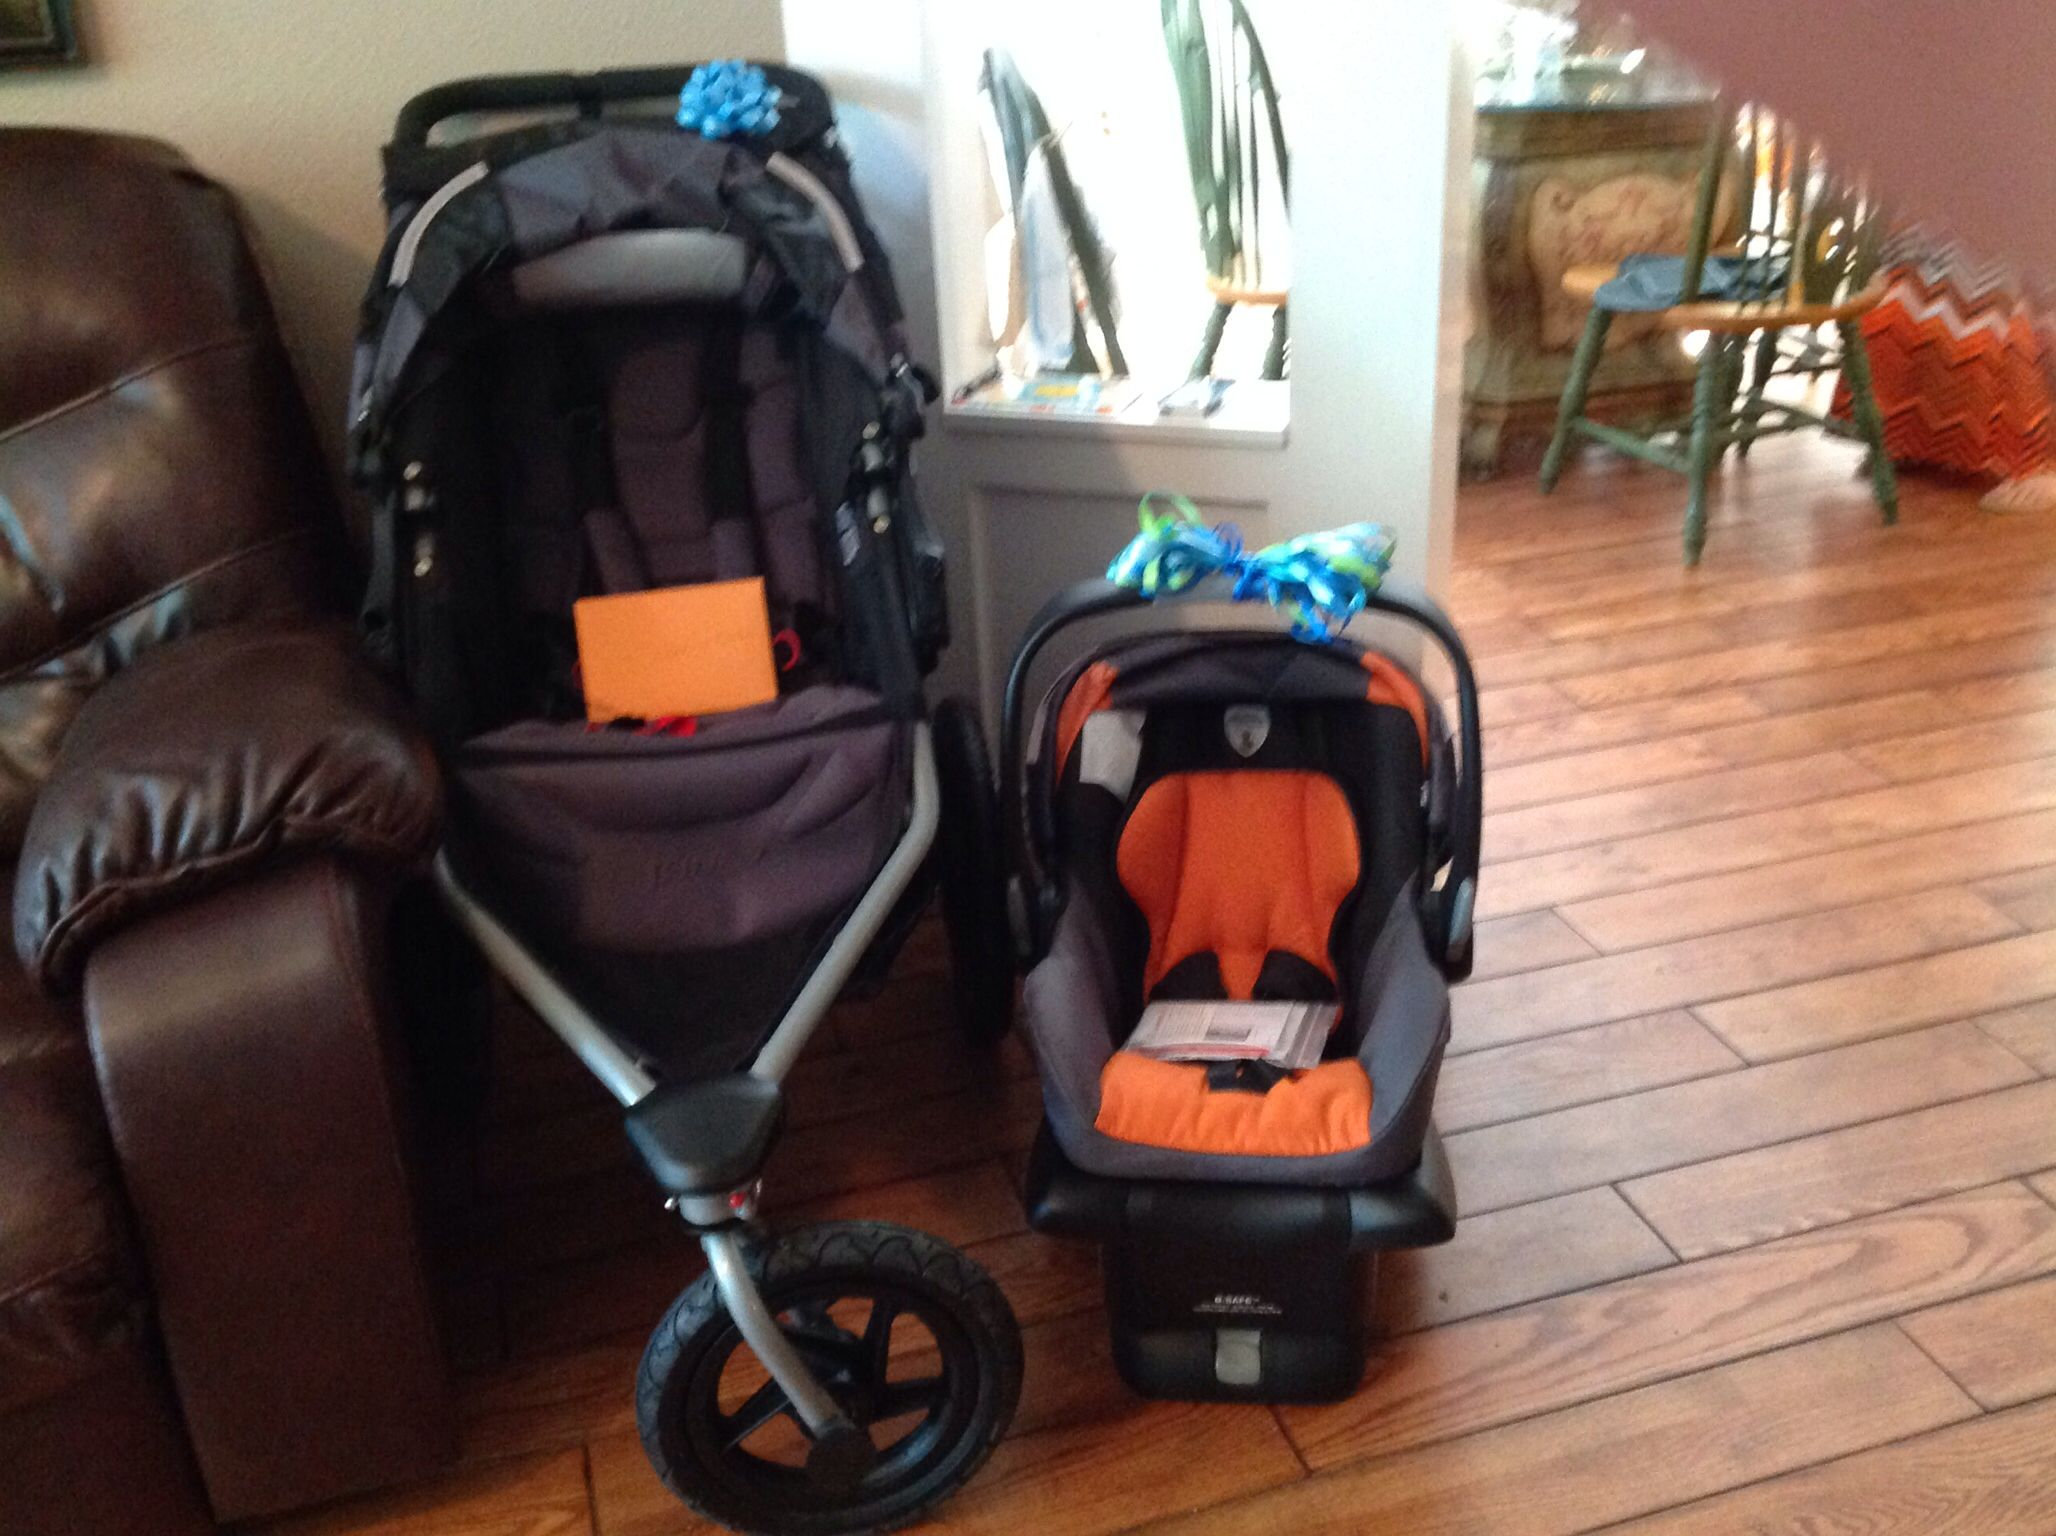 The stroller for Kristin to push REX and she can get her exercise.  CHAD Can use the car seat to ride REX at night when he is colicky